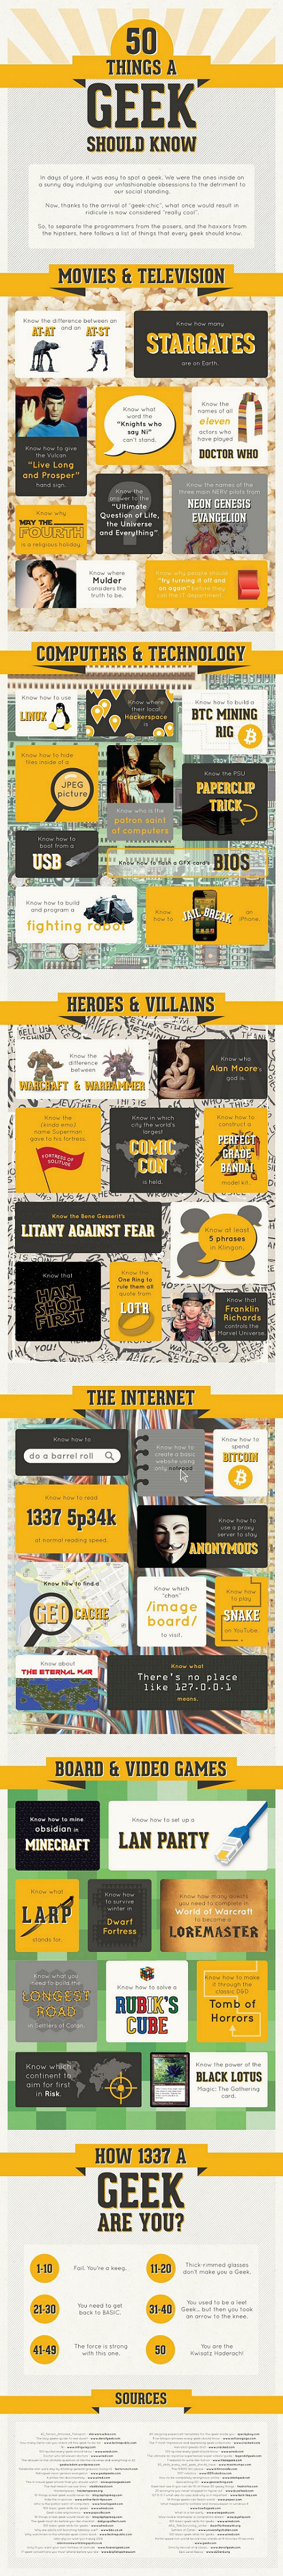 Are You a Geek Test-Infographic